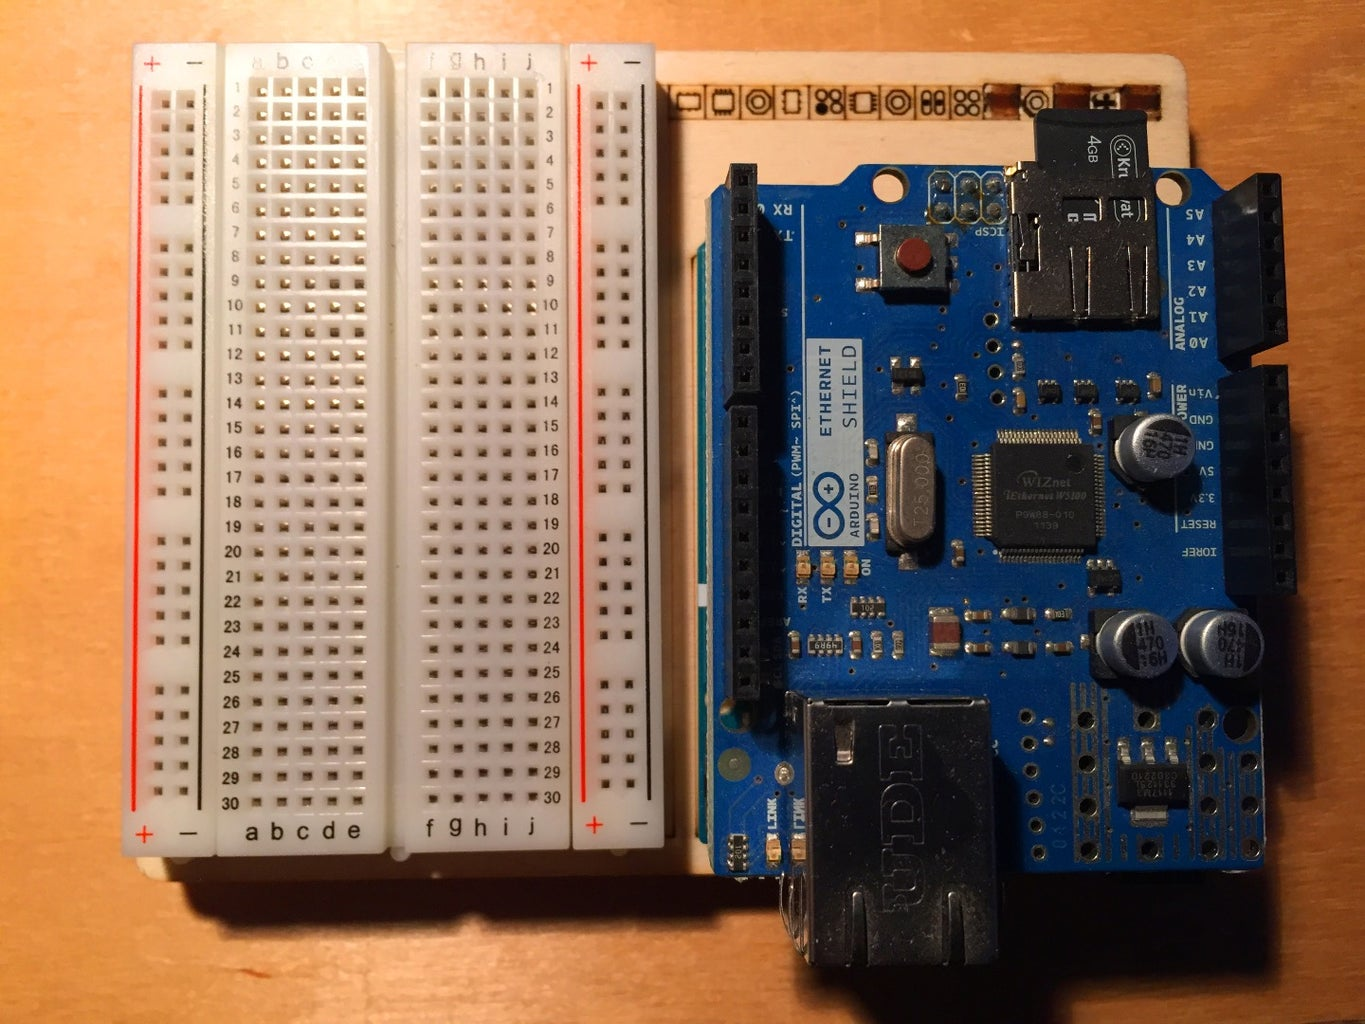 Hooking Up the Arduino